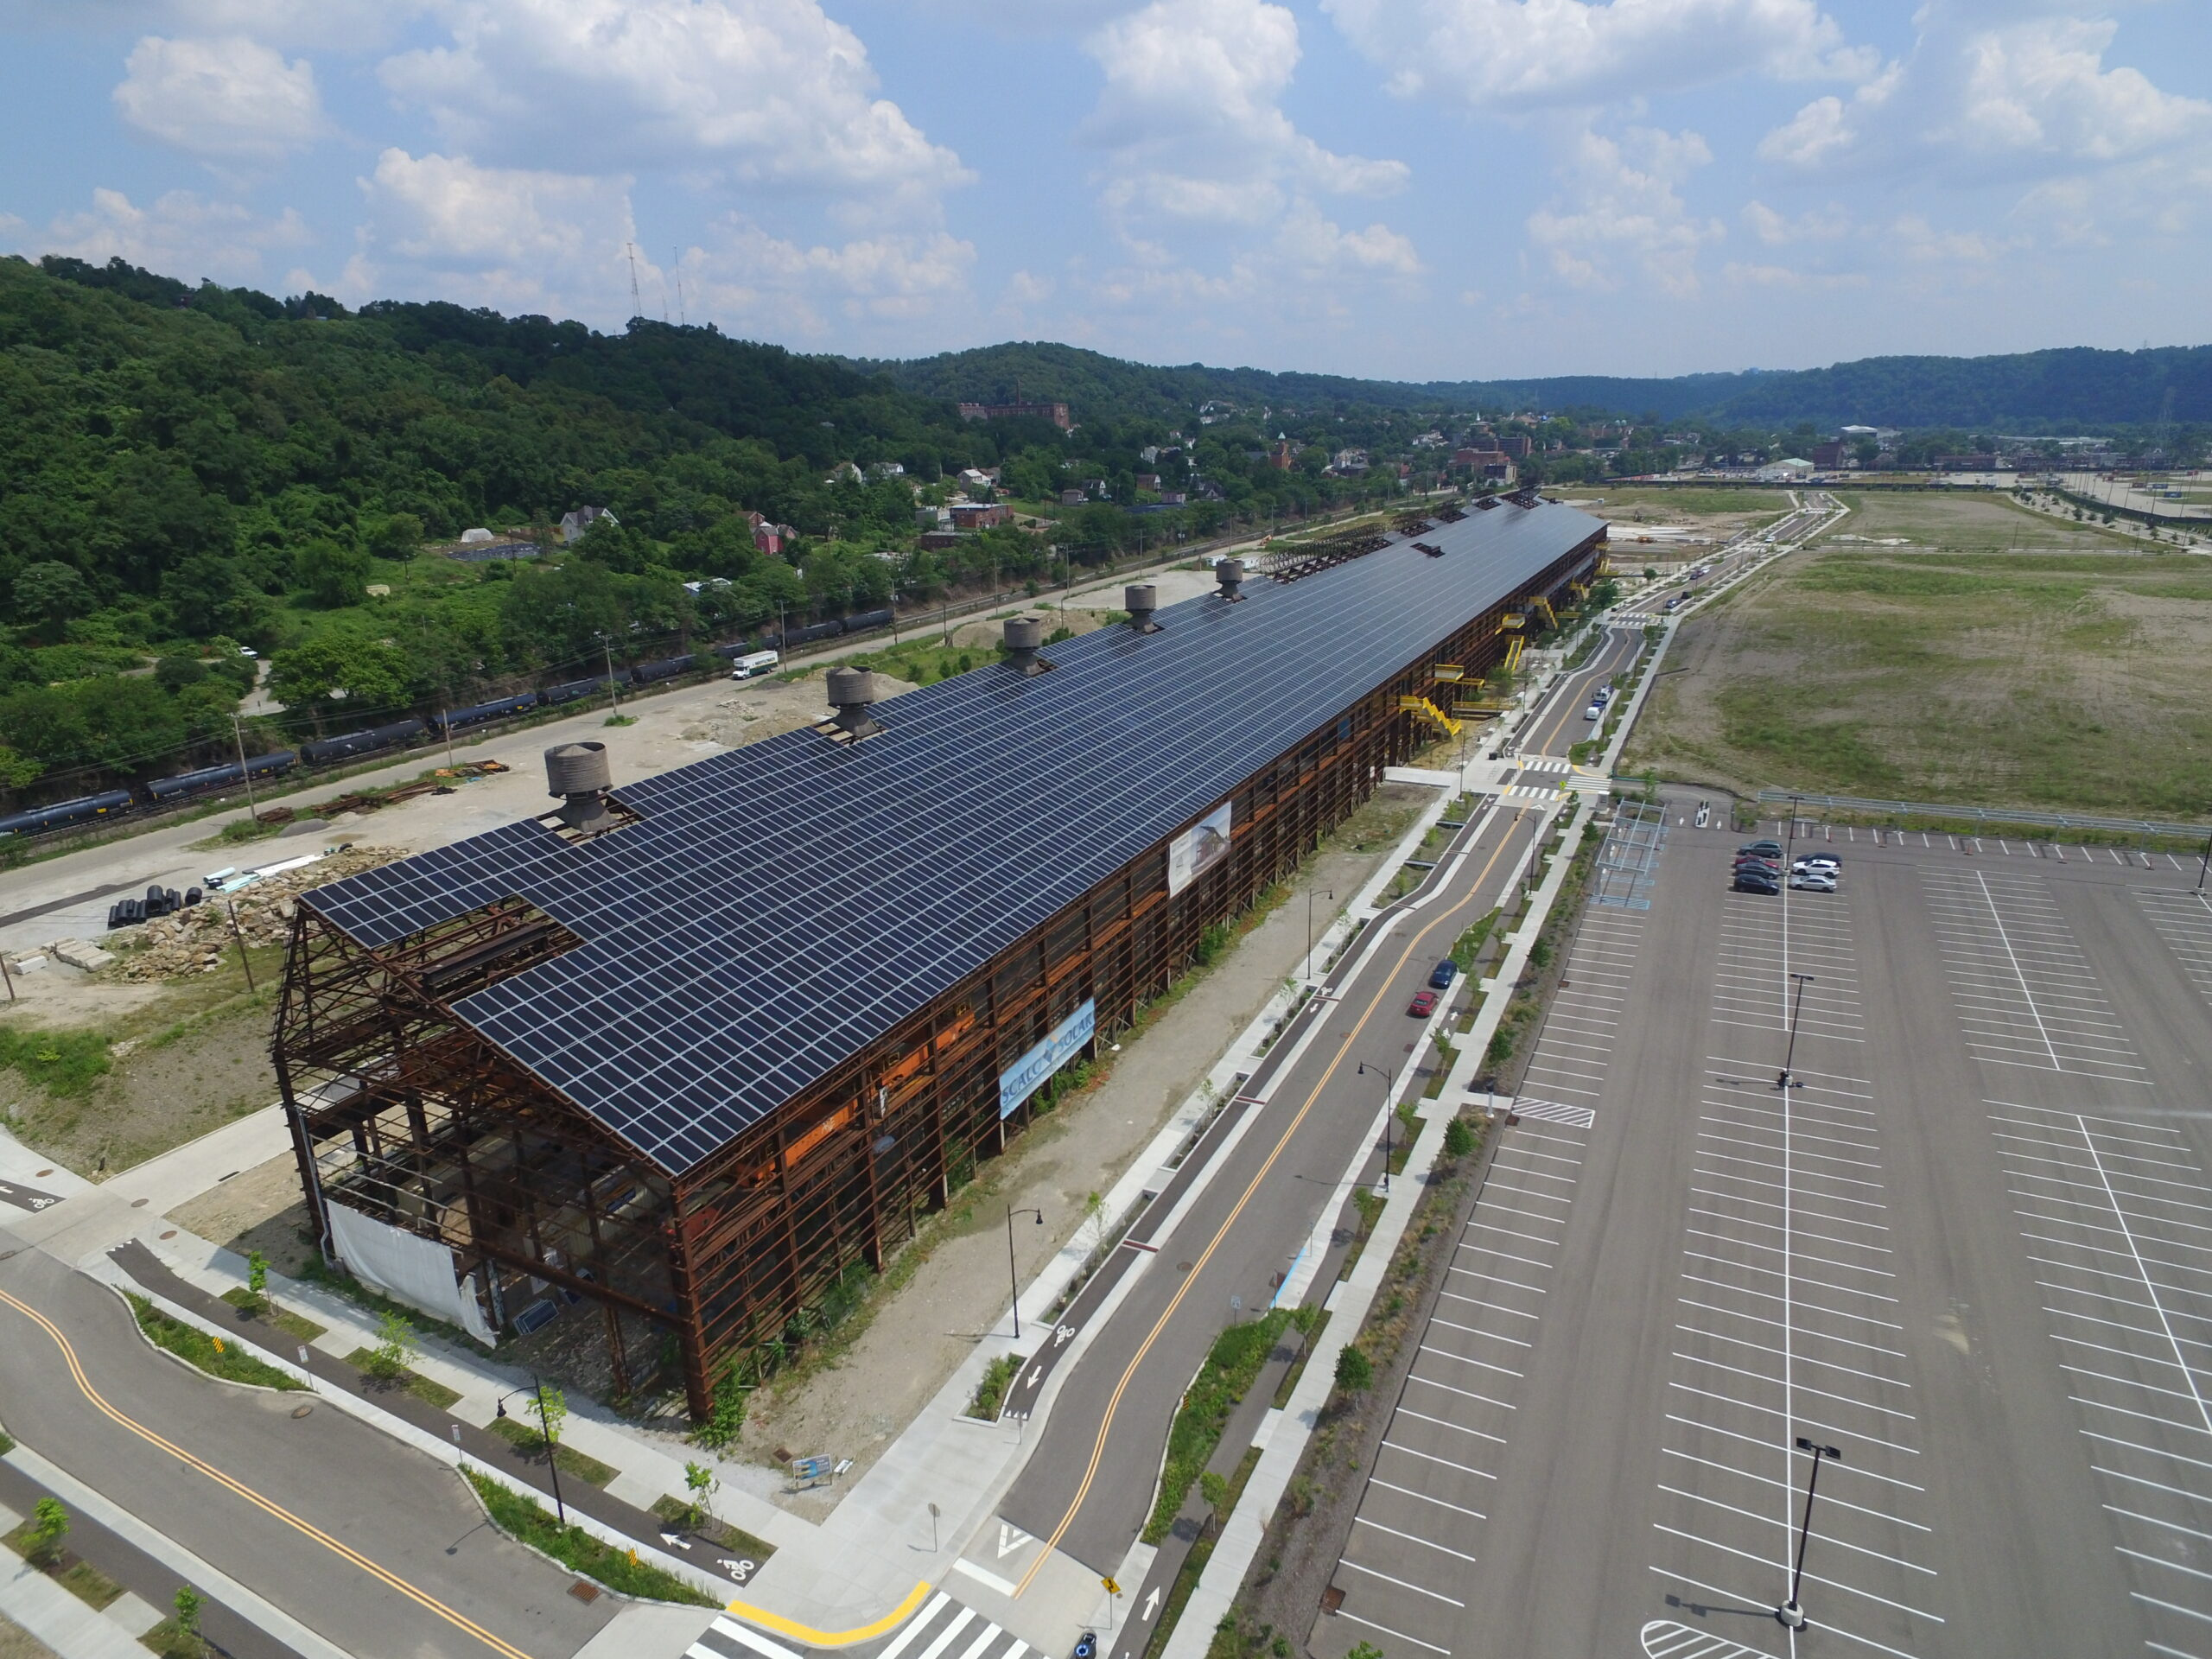 Sloped solar panels line the roof of Mill 19 in Hazelwood, Pennsylvania.